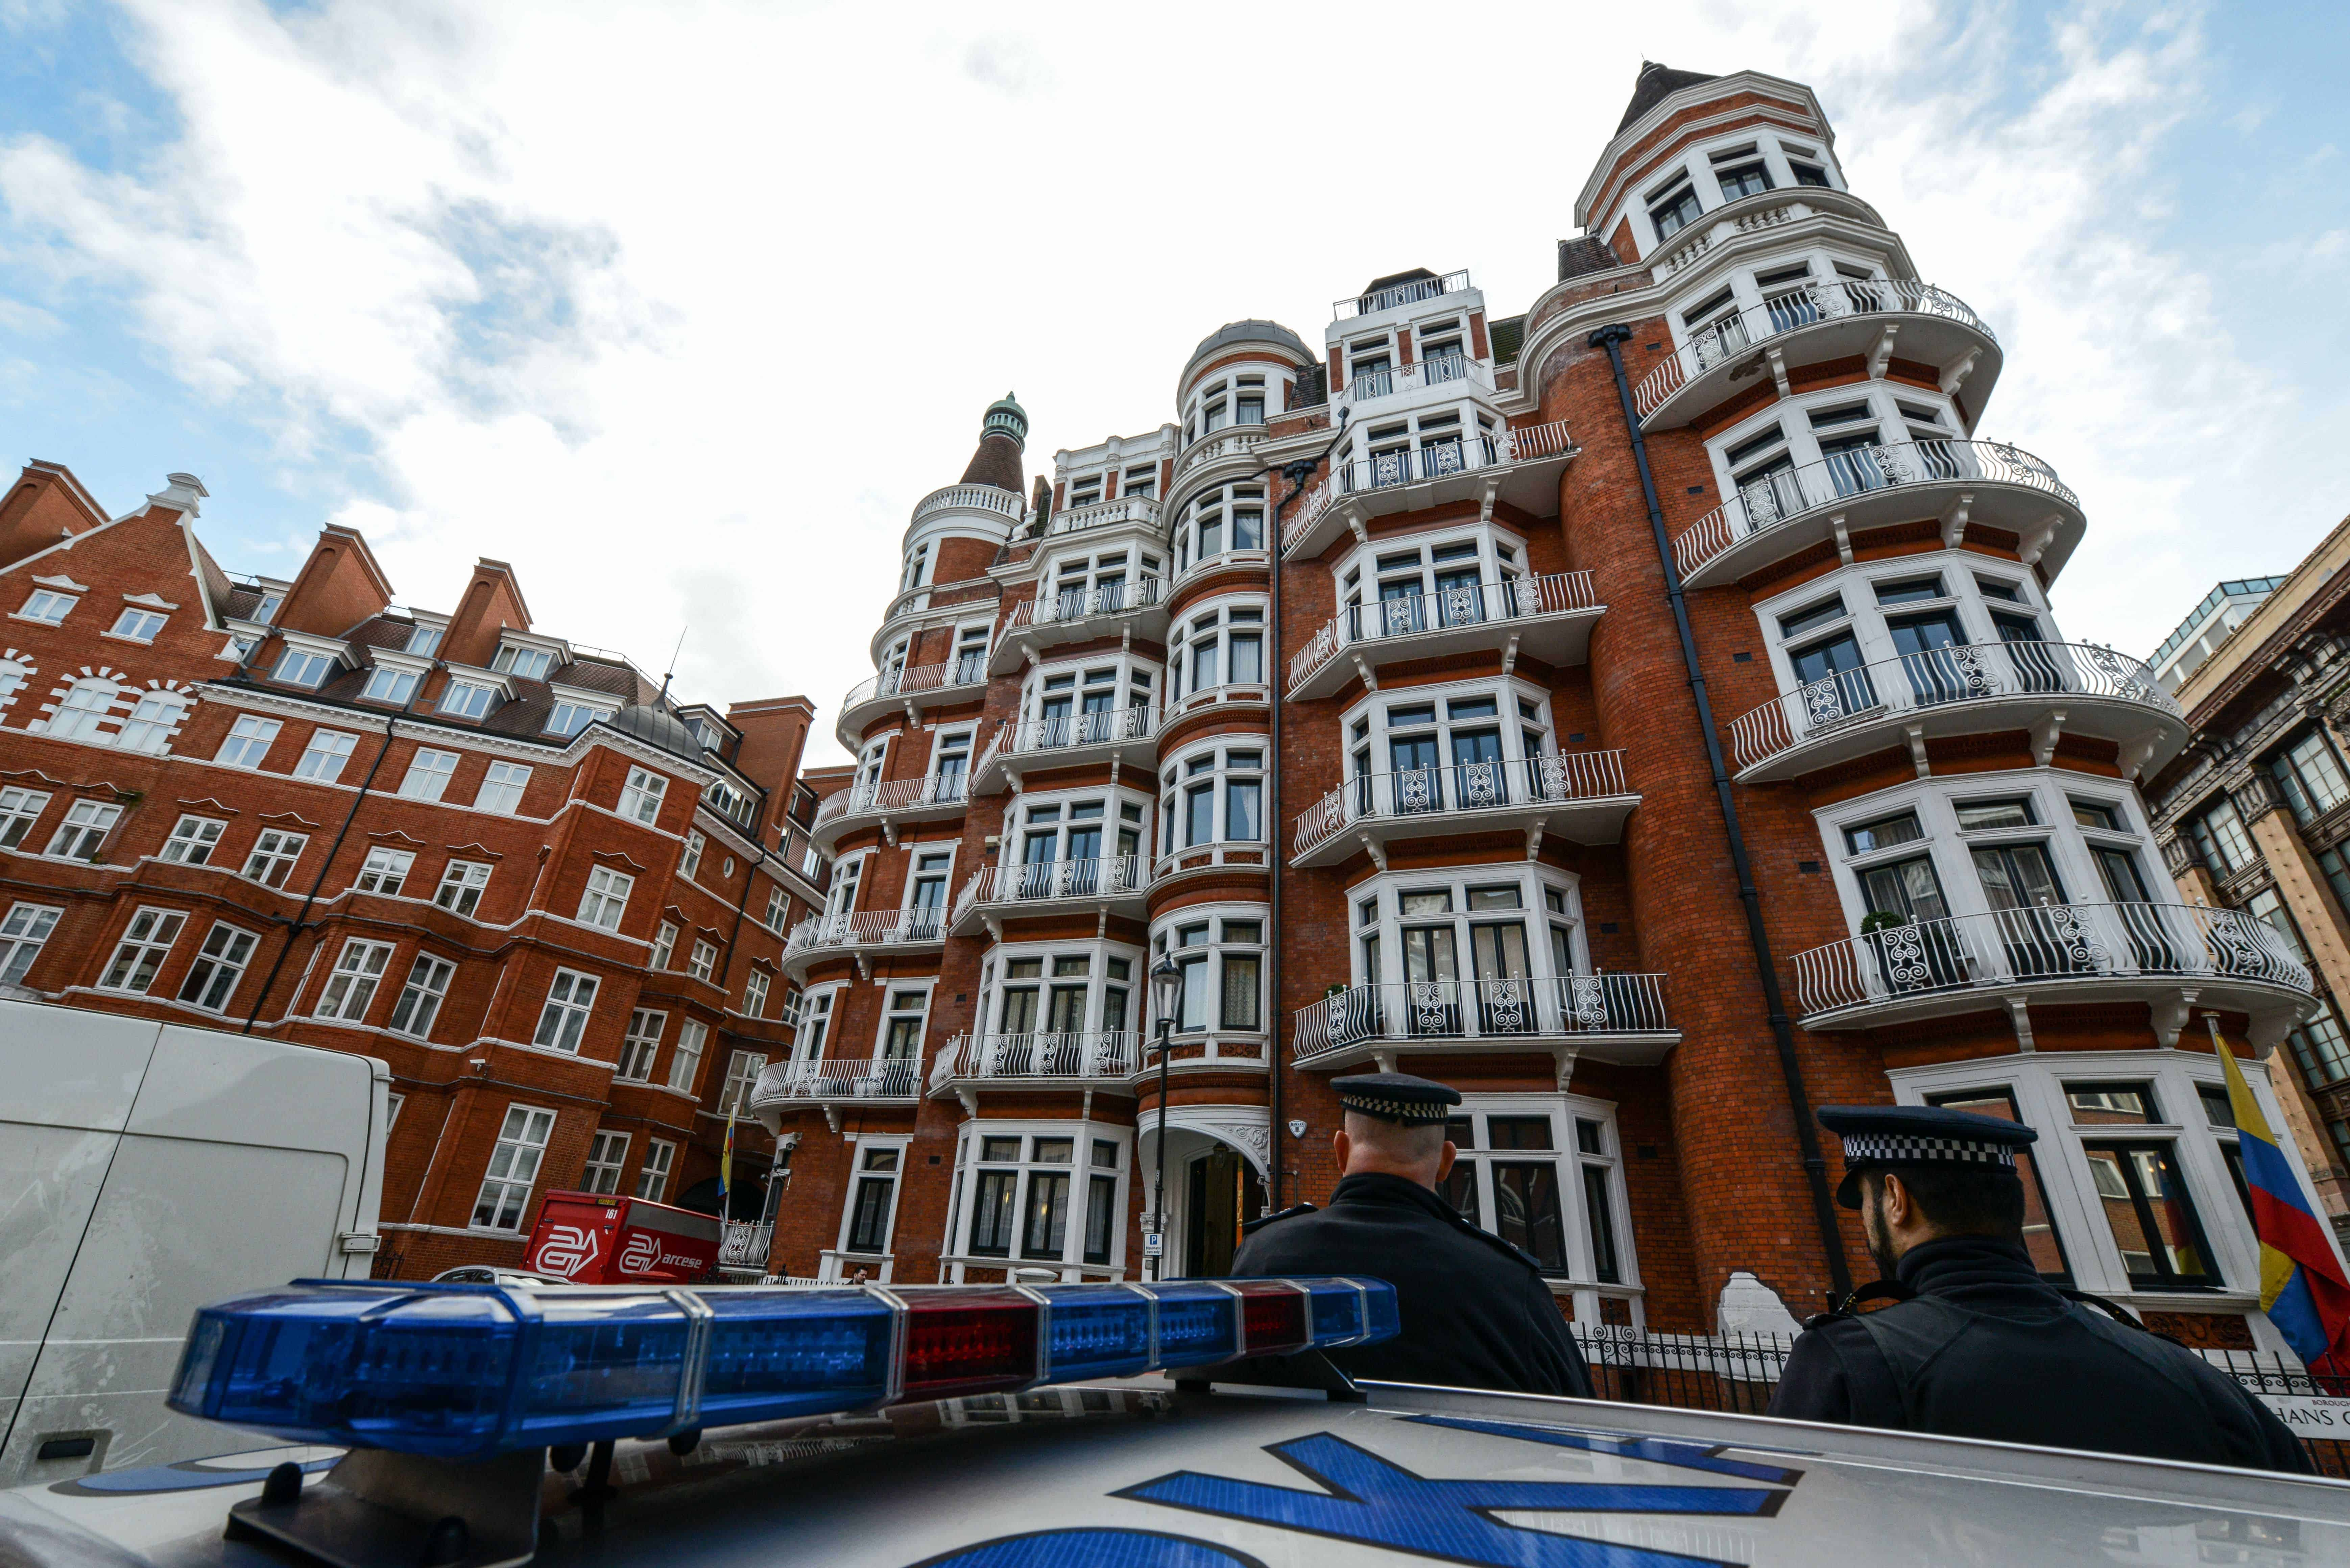 Ecuador's Embassy in London, where WikiLeaks founder Julian Assange is holed up.